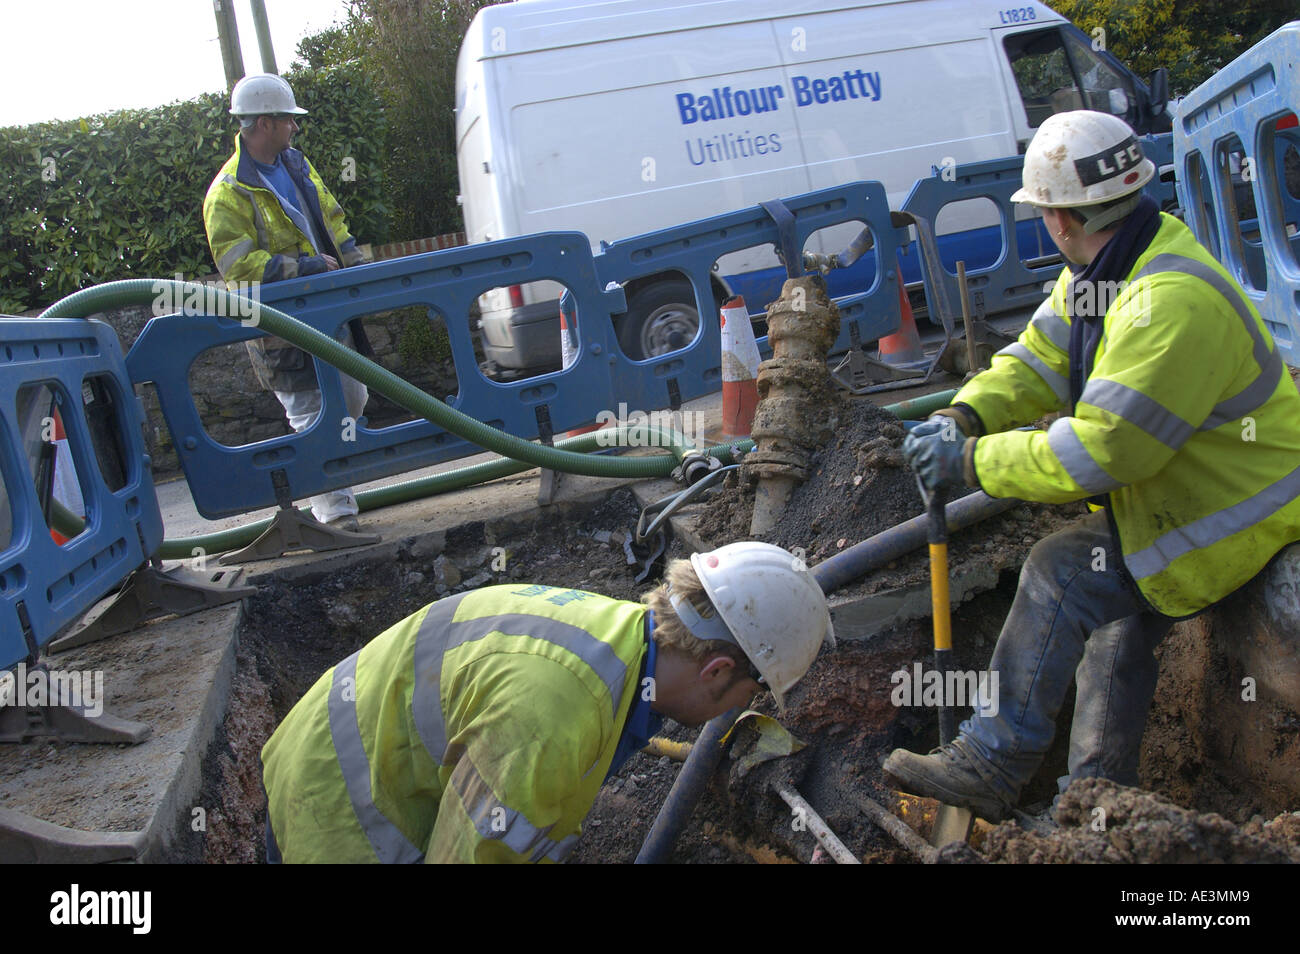 Balfour Beatty for South West Water repair and replace water mains in Bovey Tracey South Devon England - Stock Image